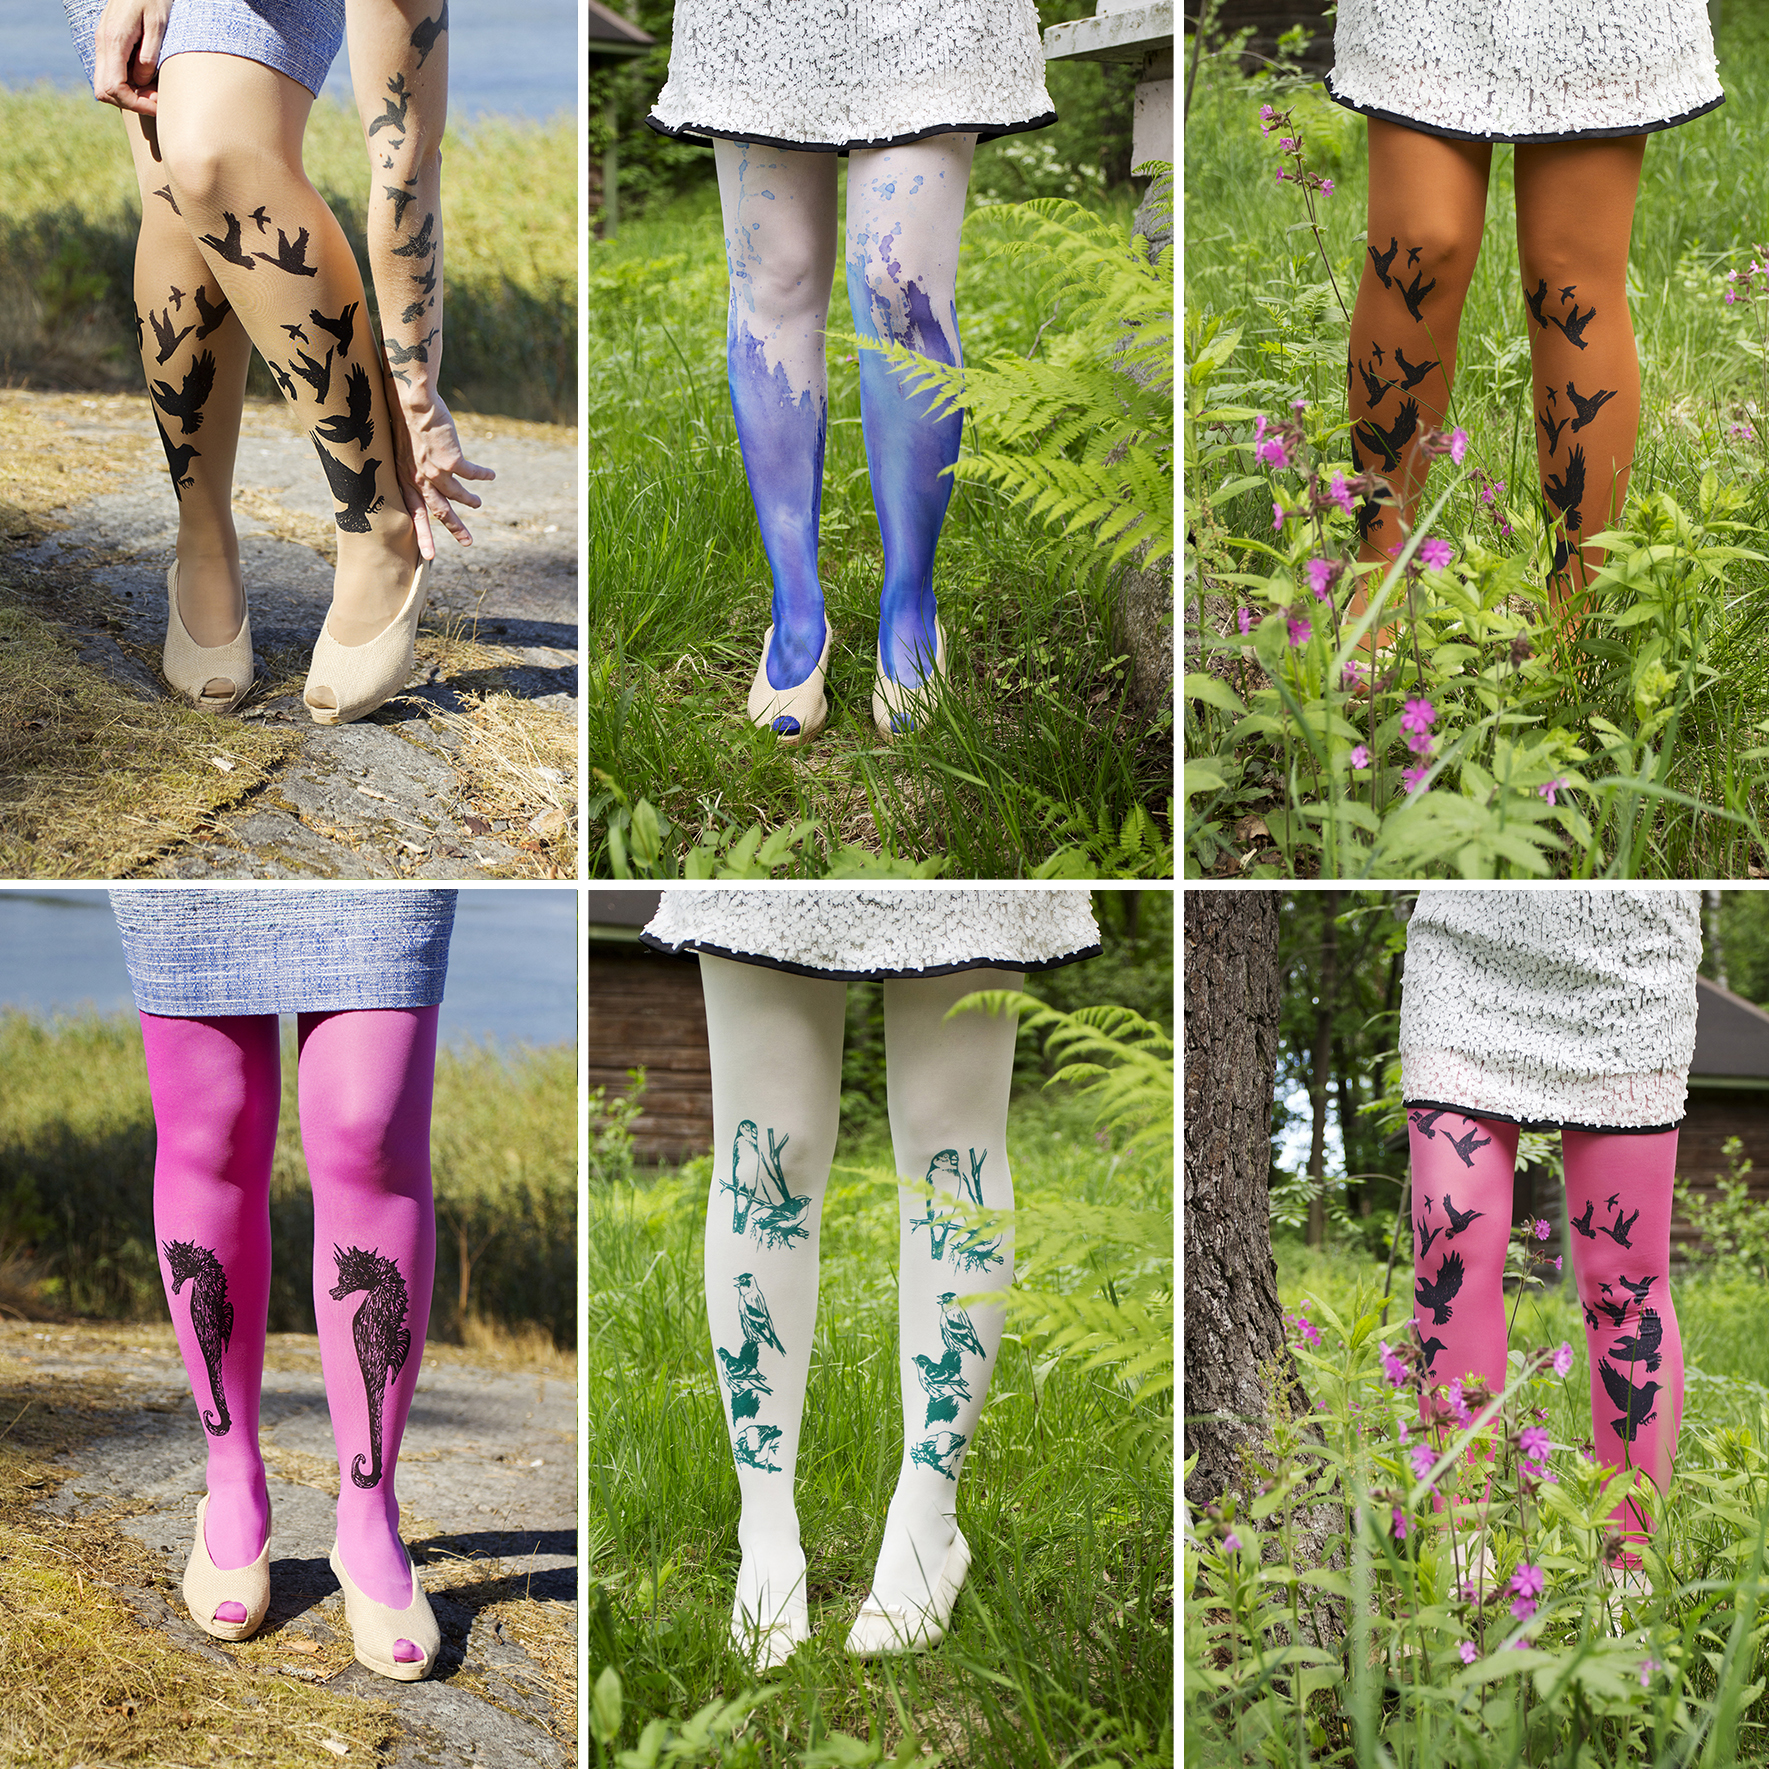 VILMURI by Vilma Wallinmaa tights avalable @ Design District Market 2015